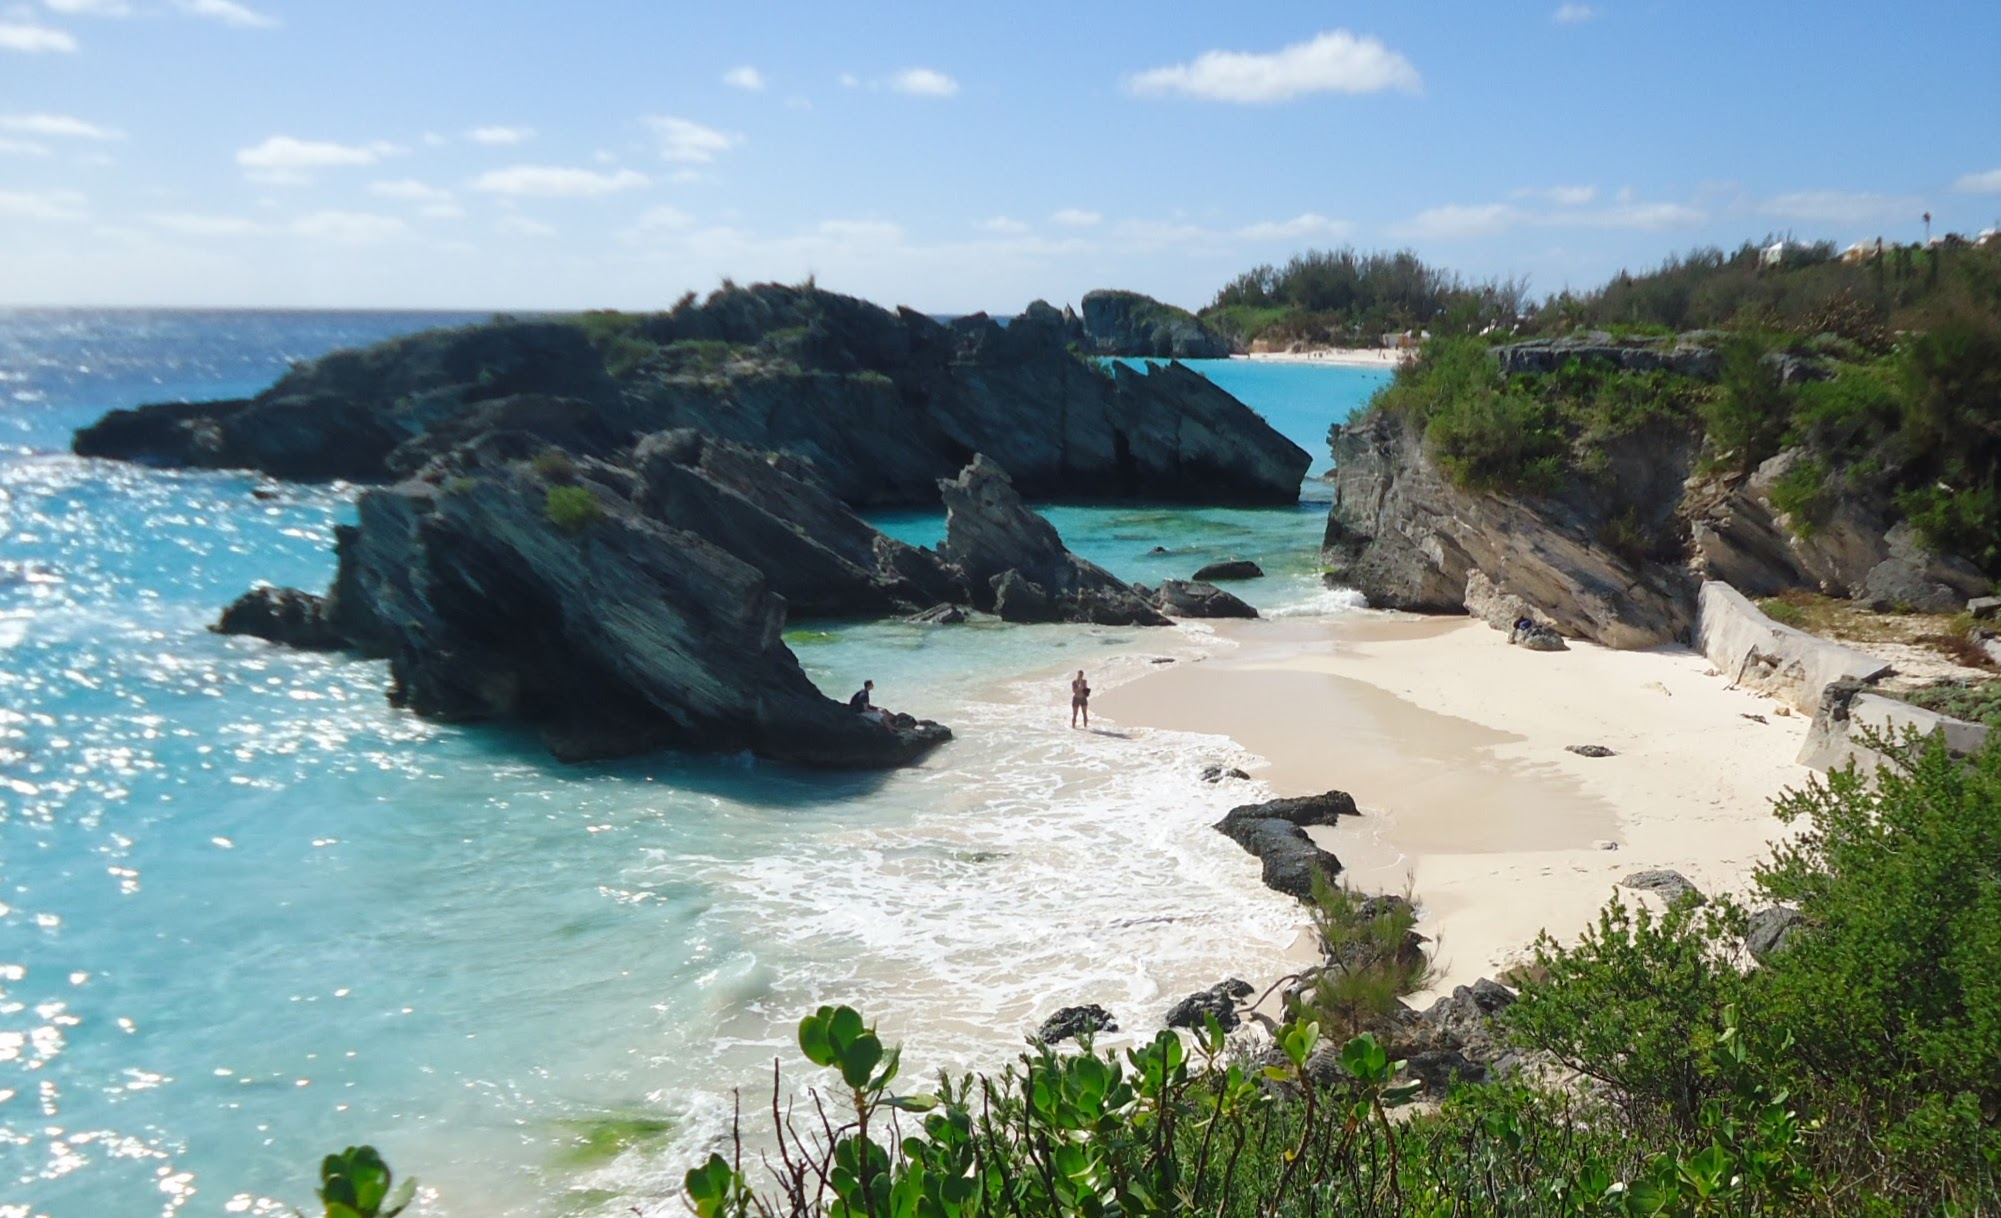 The travel pocket guide top 5 most beautiful beaches in Top 5 most beautiful islands in the world